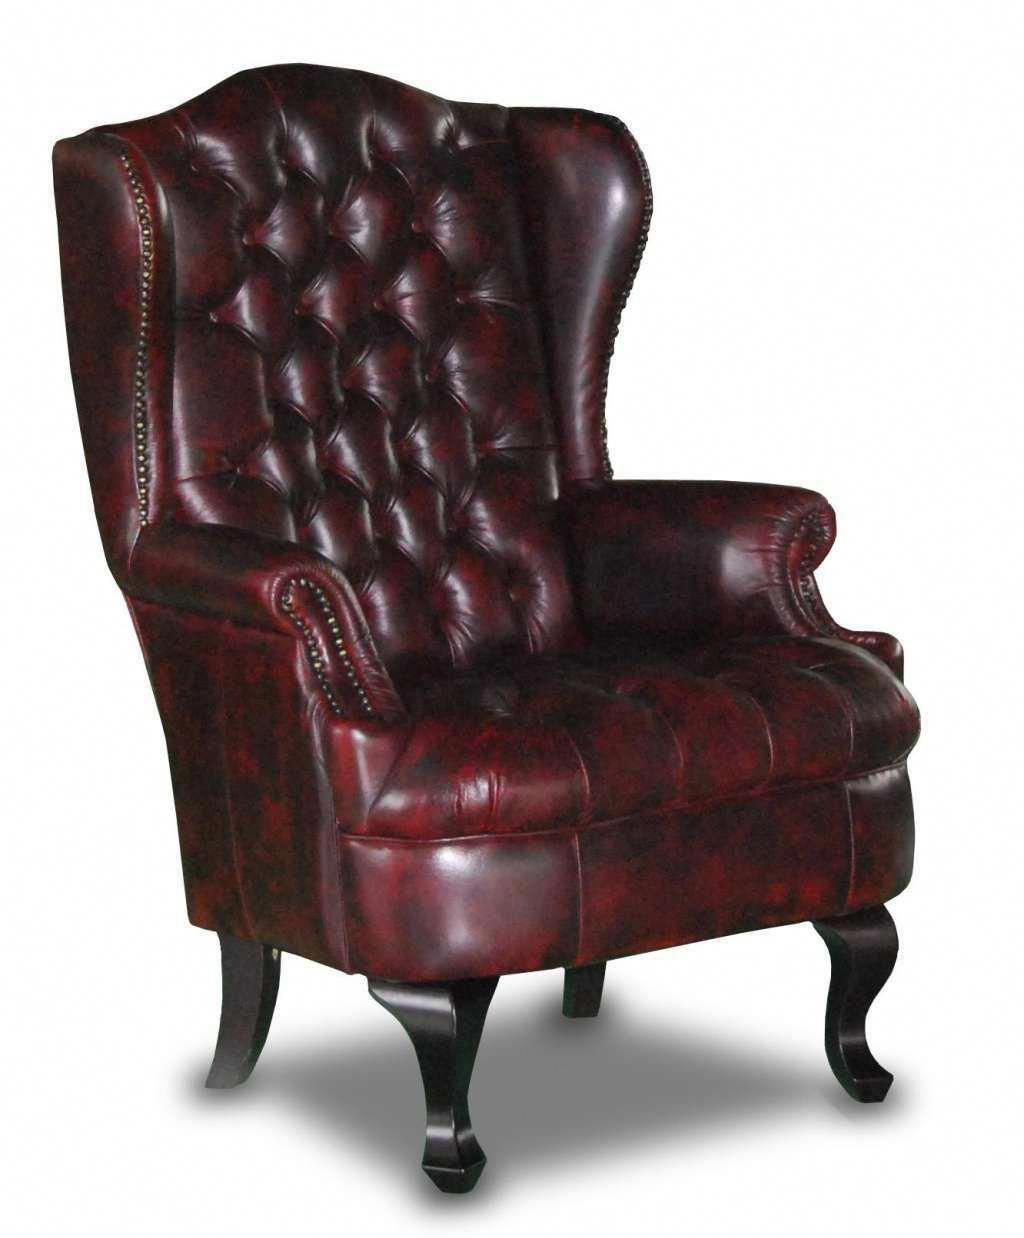 Brown Leather Recliner Chair Smallswivelaccentchair Woodenchairs Wingback Chair Single Sofa Chair Classy Furniture